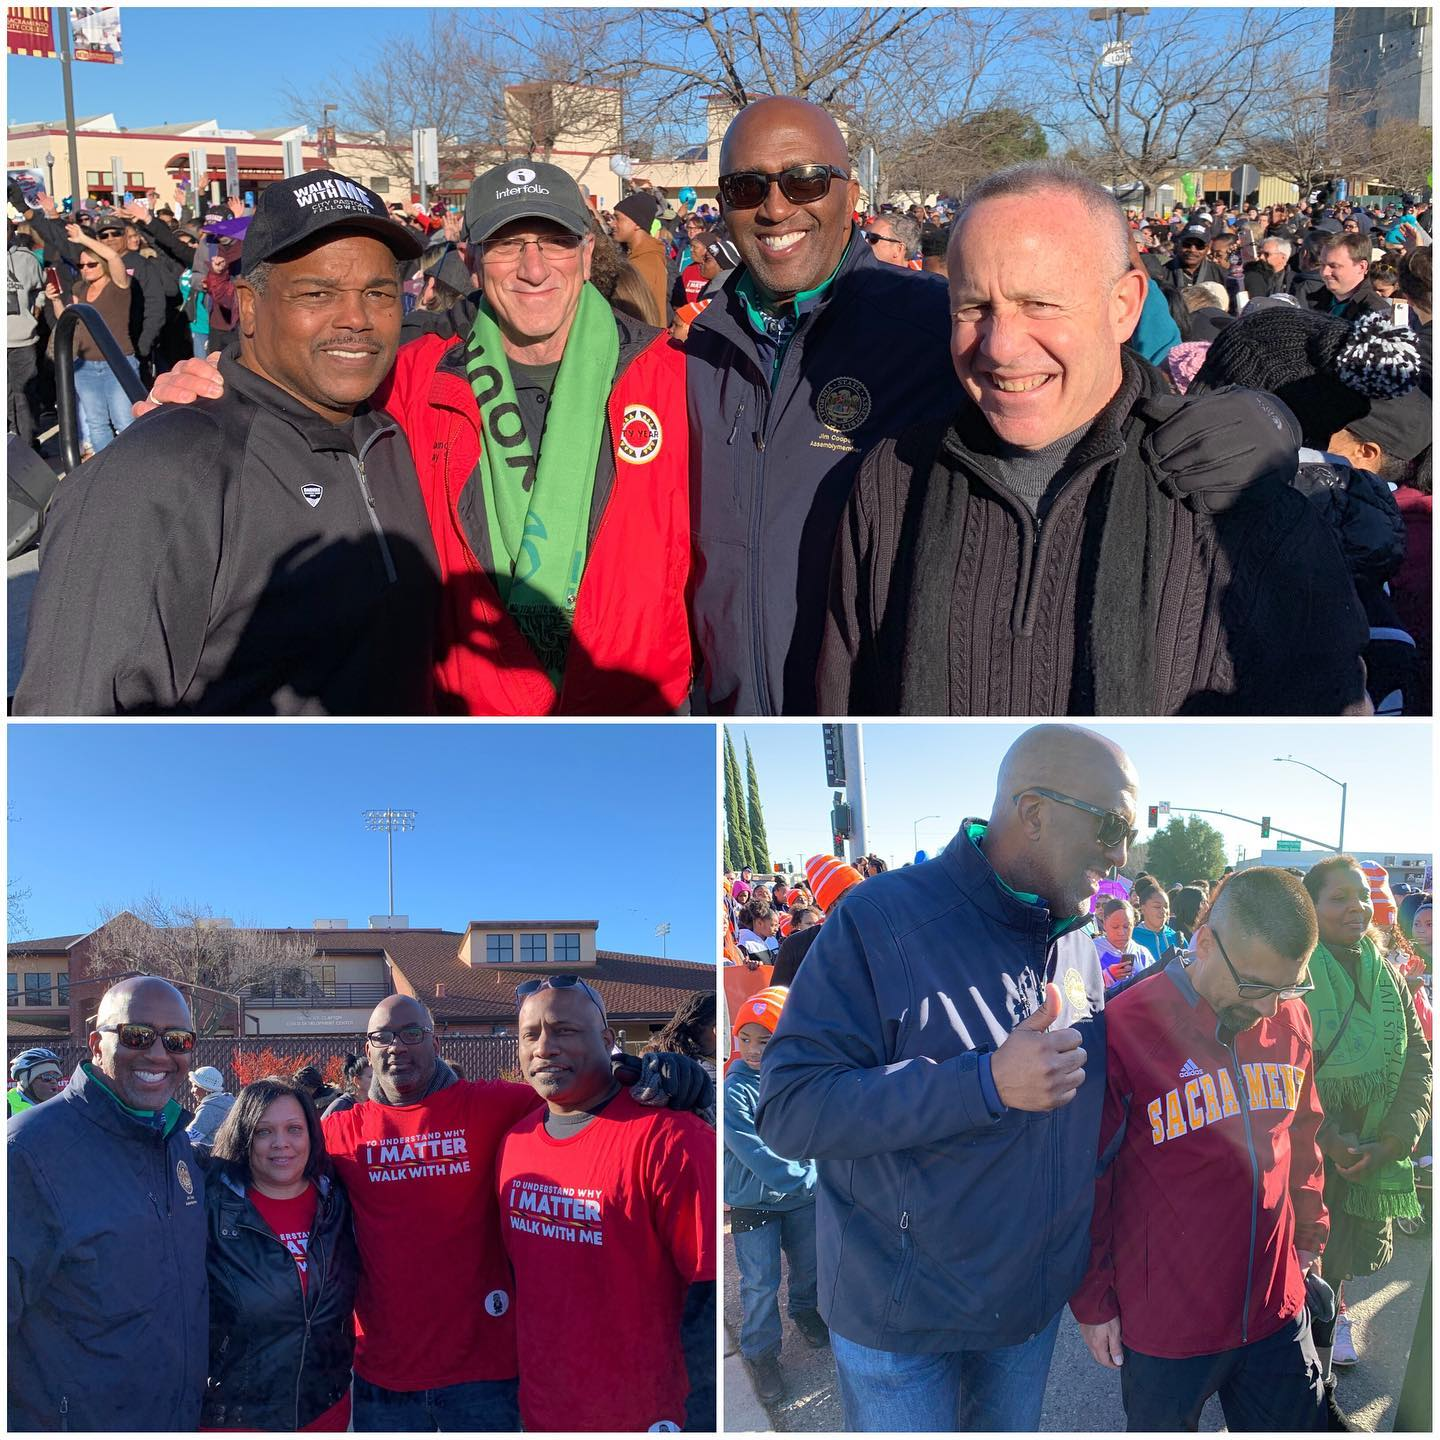 """This year's """"March for the Dream"""" in Sacramento was a huge success.  It's always inspiring marching with our brothers and sisters in remembrance of Dr. King."""